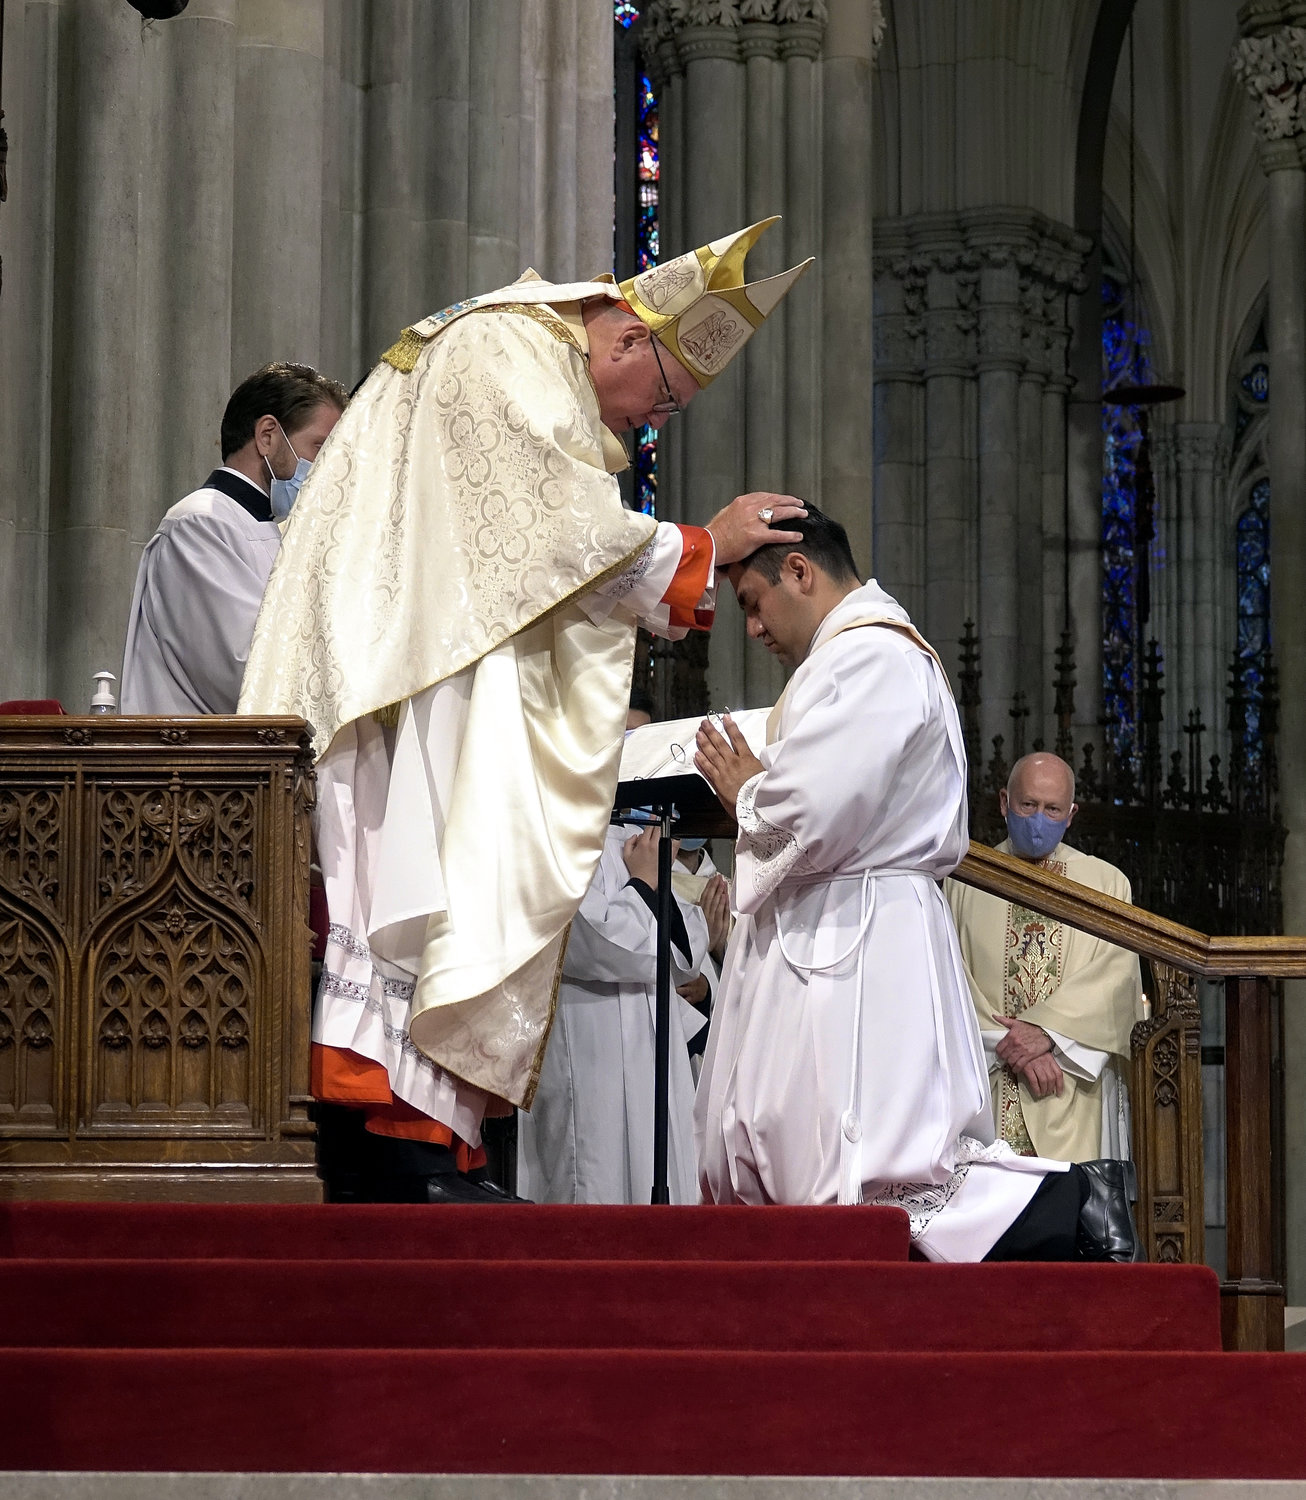 Cardinal Dolan lays hands on Father Luis Silva during the Rite of Ordination.